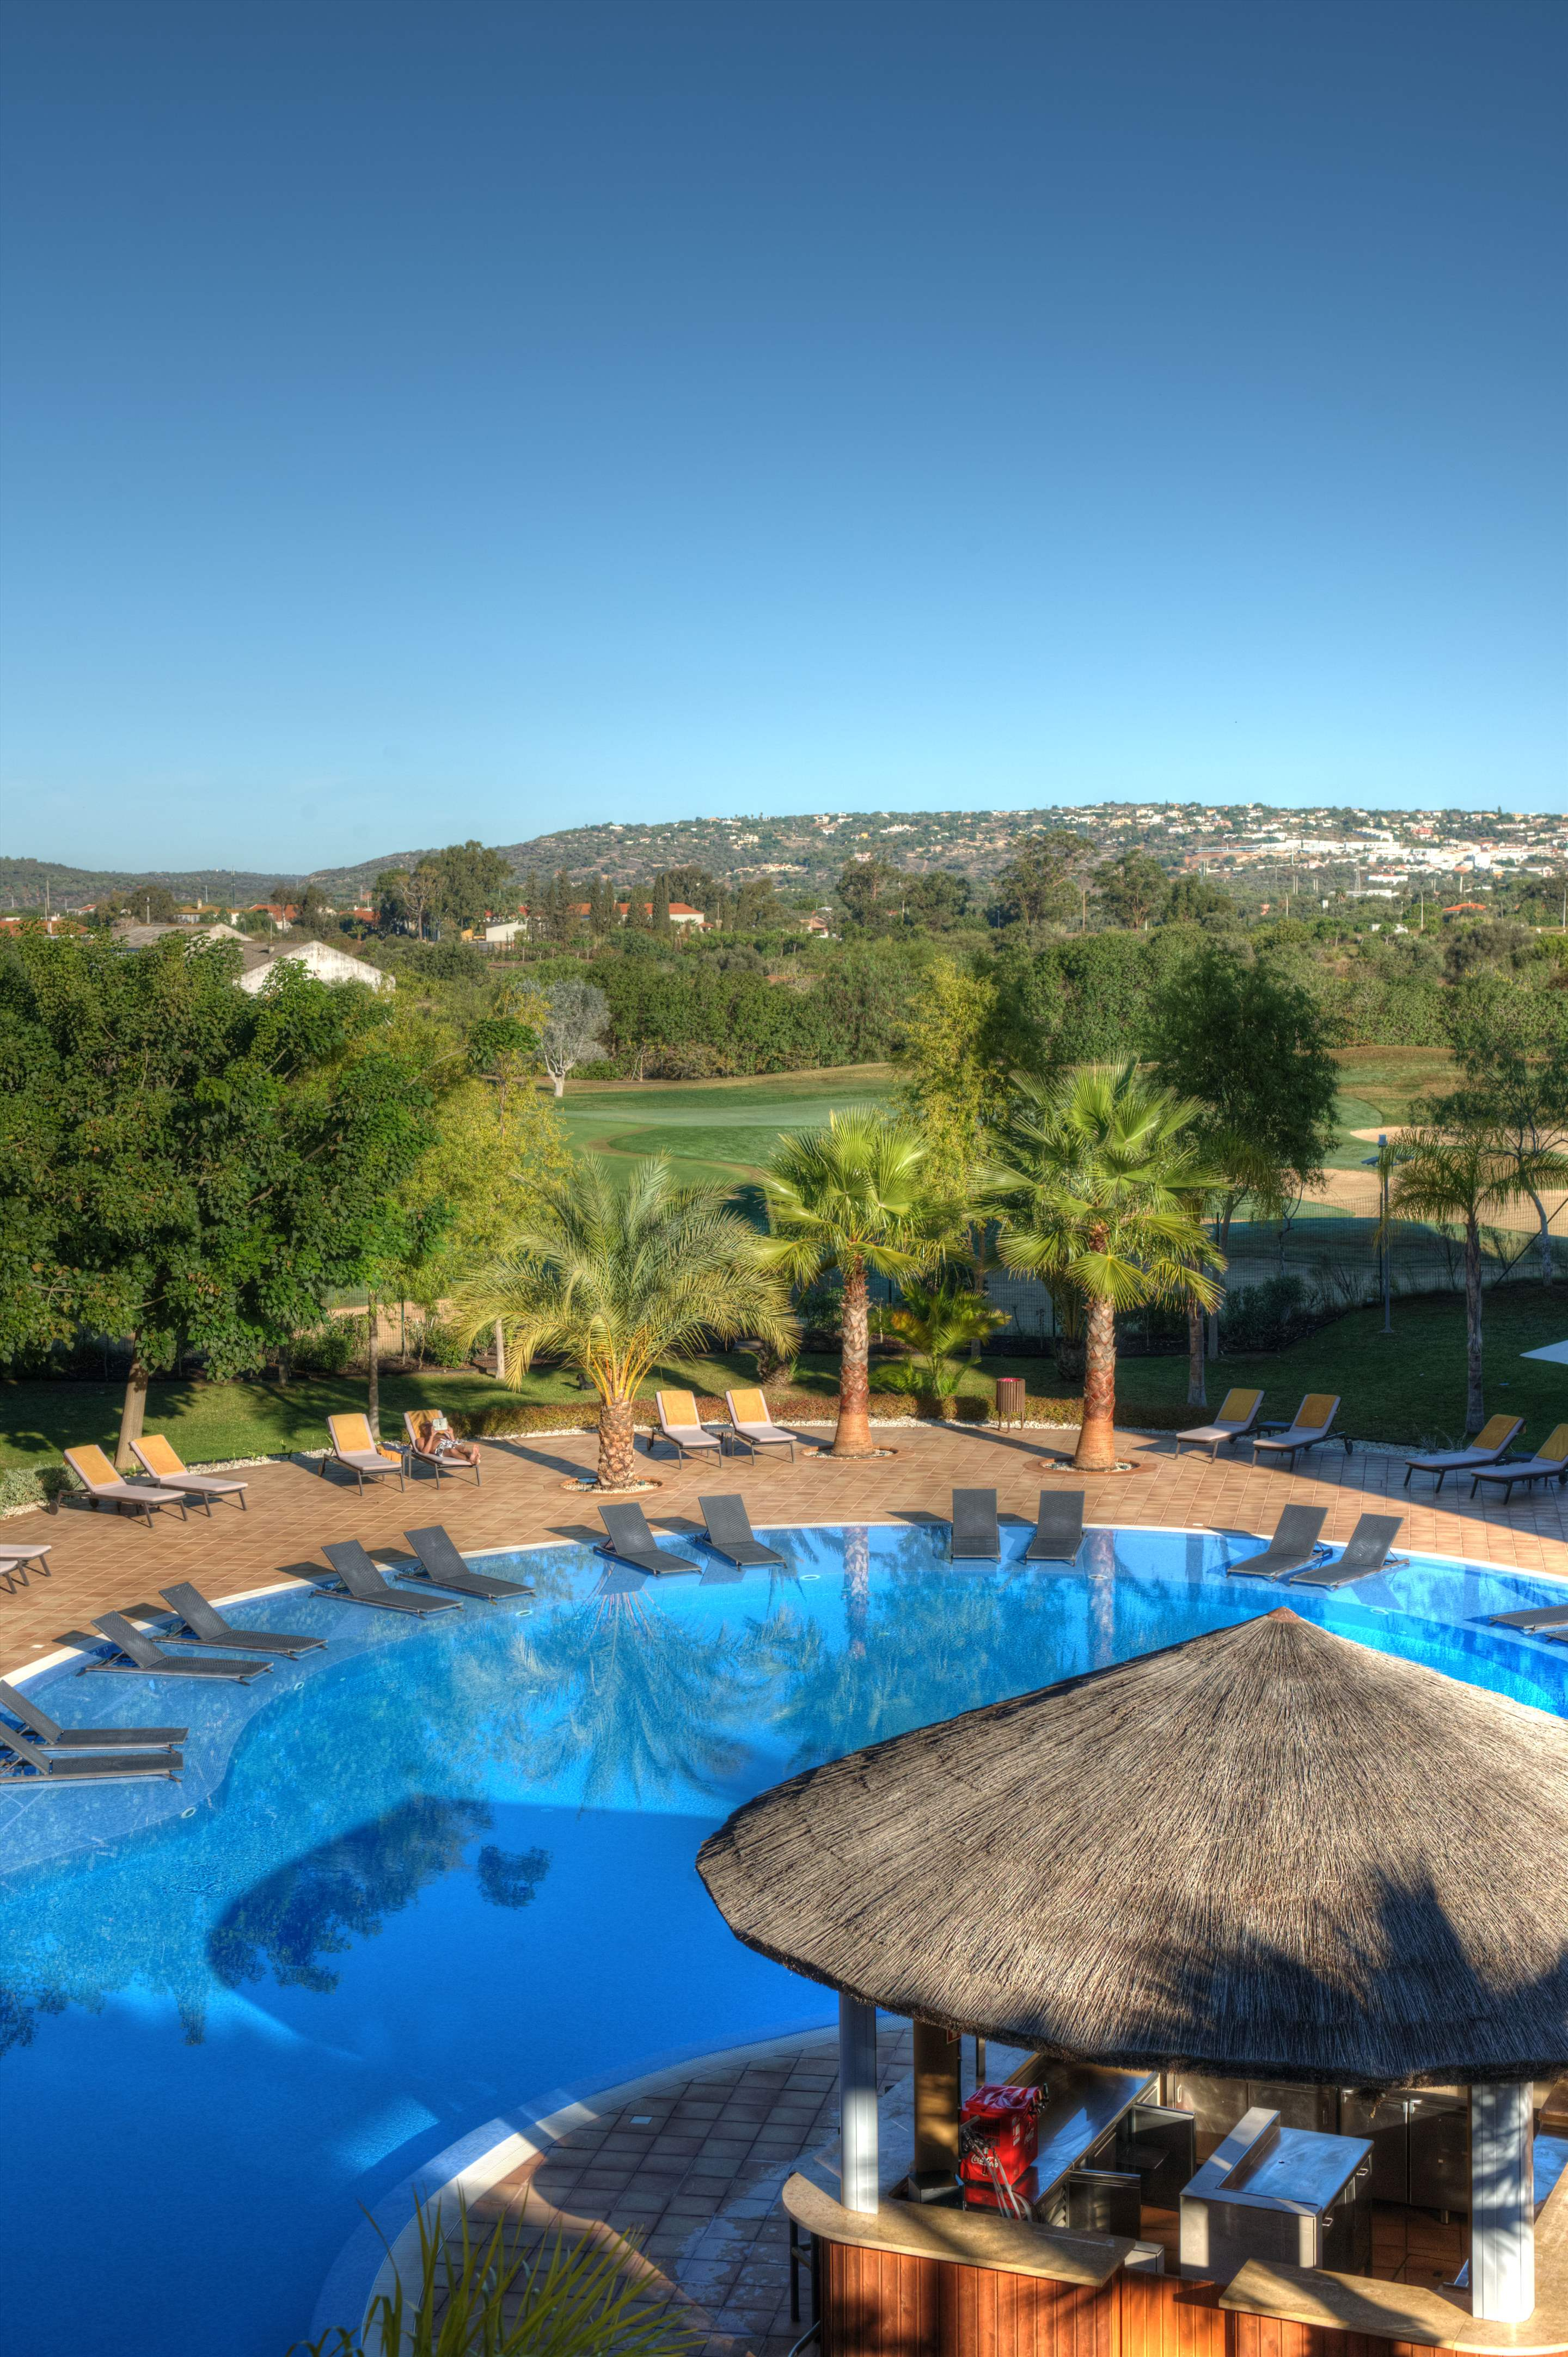 The Residences at Victoria by TIVOLI 3 Bed Apt , 3 bedroom apartment in The Residences at Victoria by TIVOLI, Algarve Photo #23